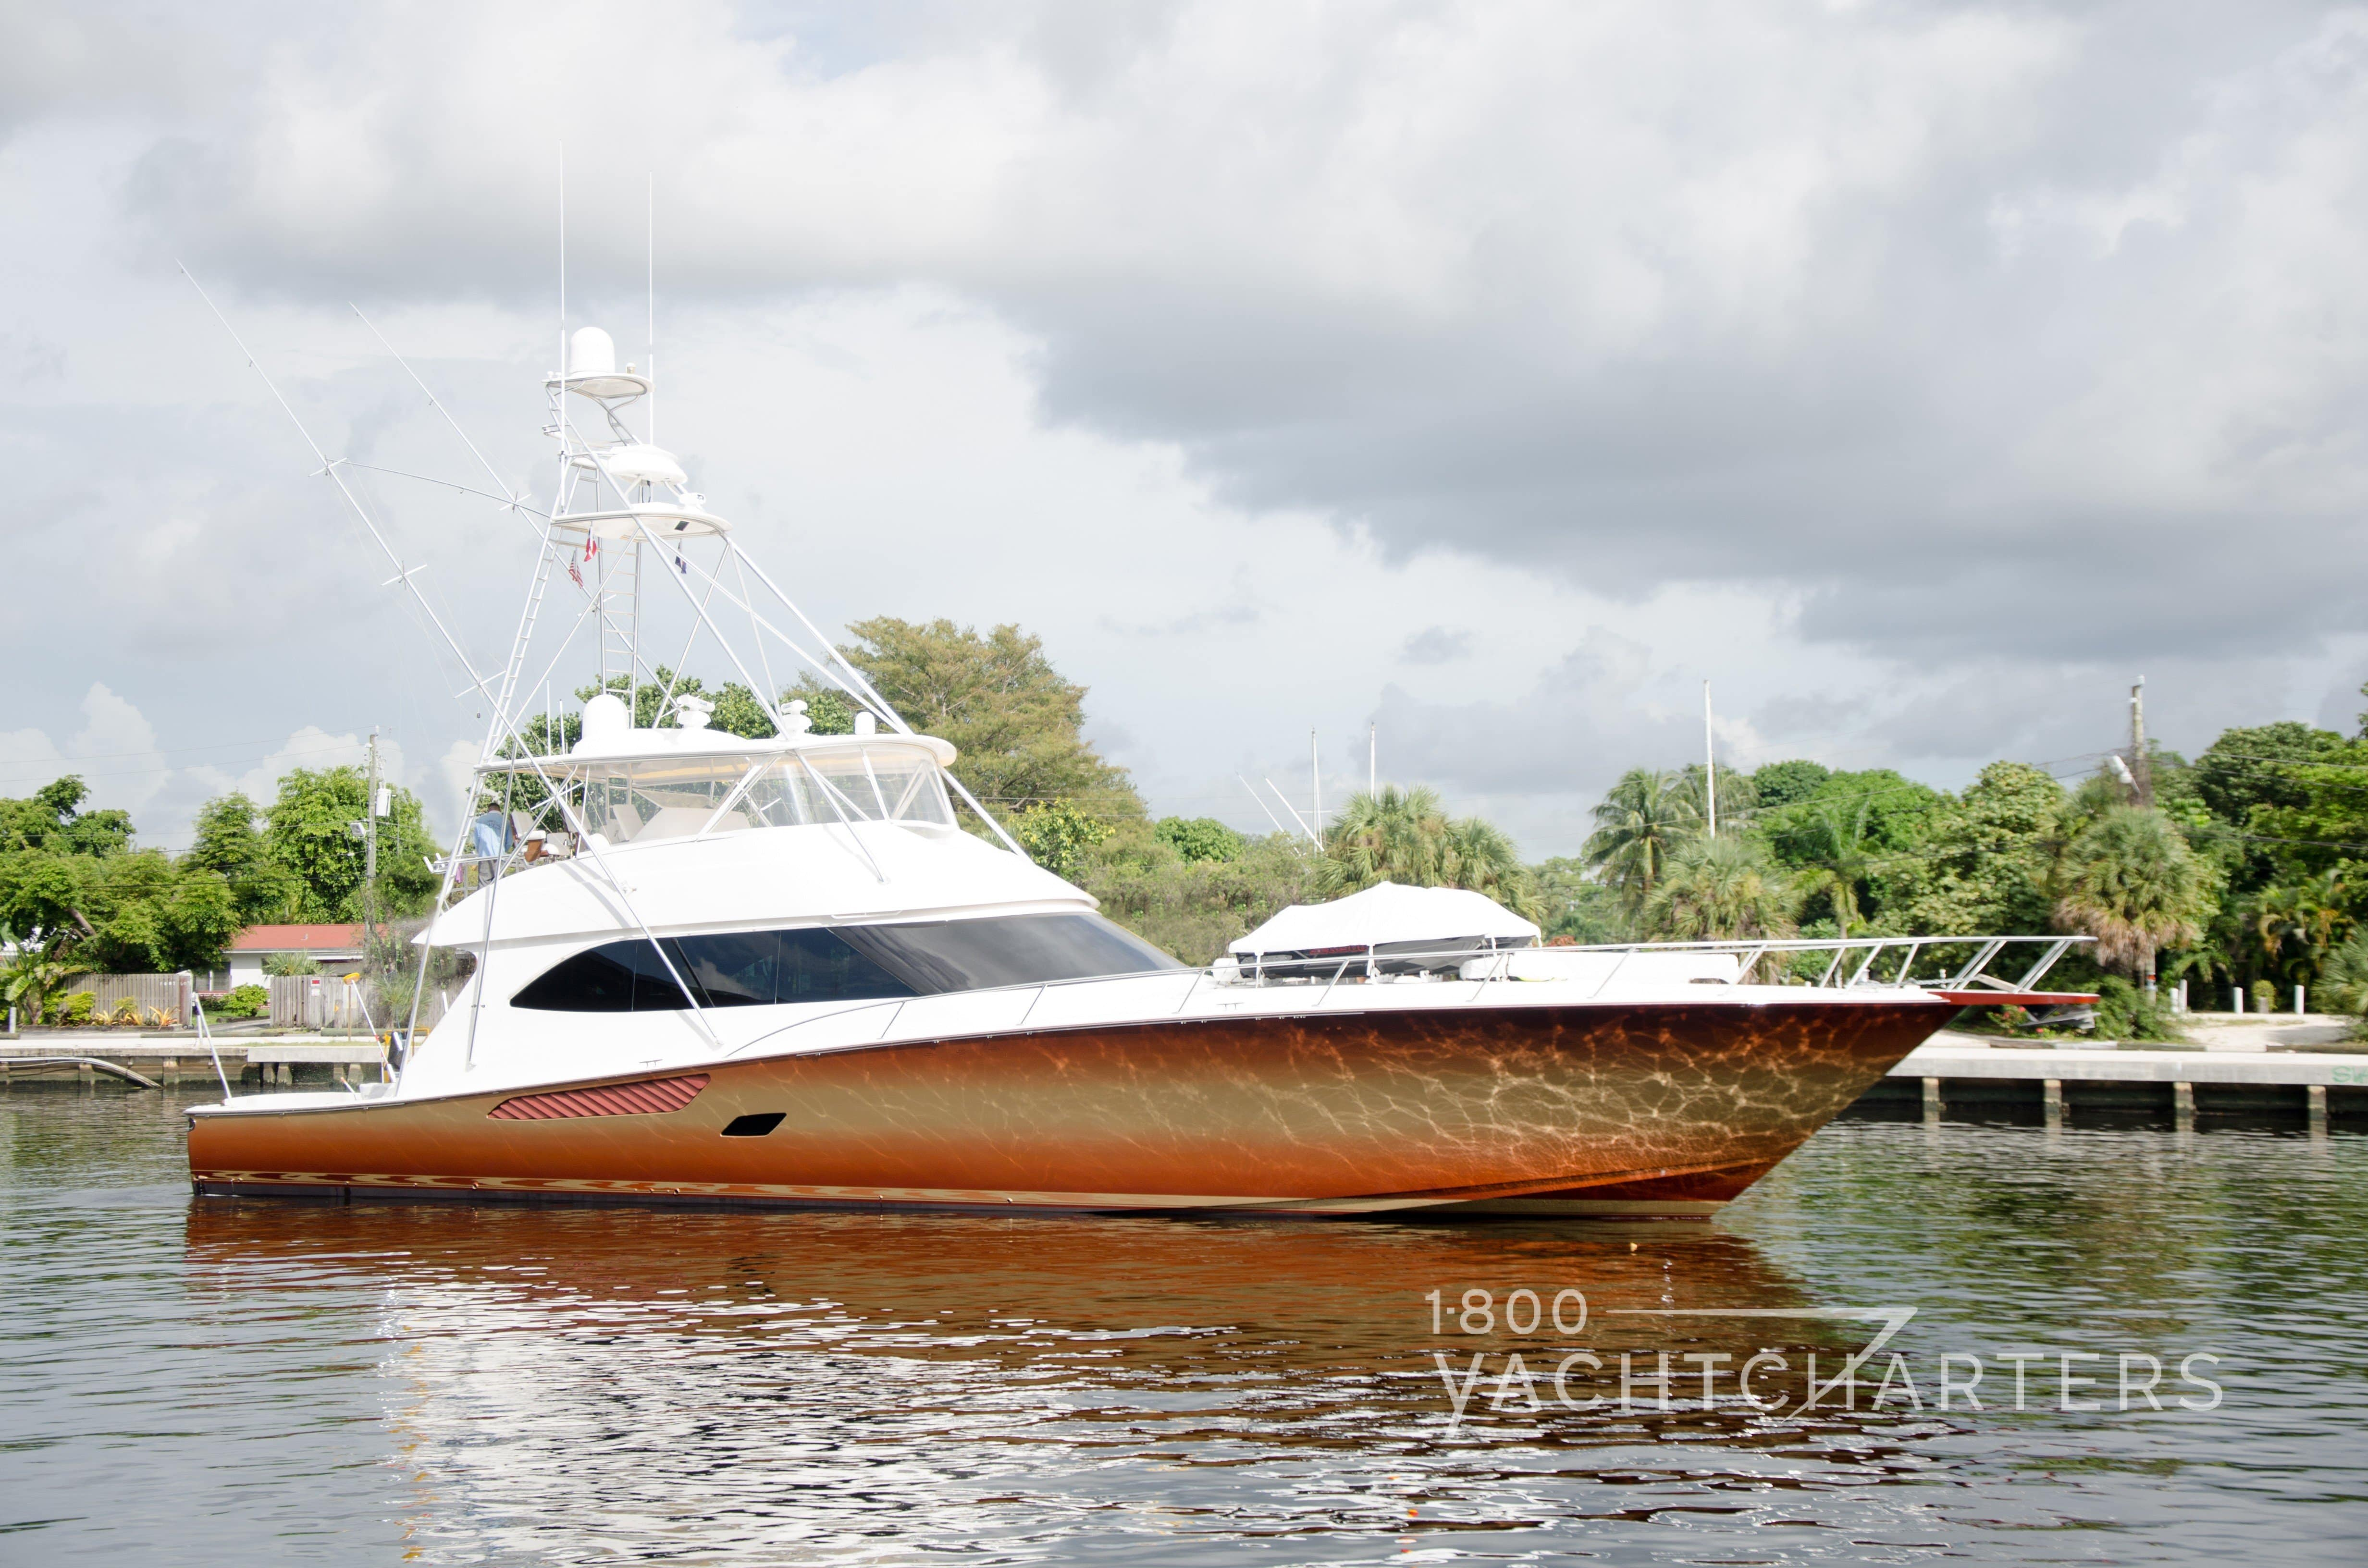 MUSTANG SALLY 82 Viking motoryacht profile facing to the right with rust-colored hull and white superstructure